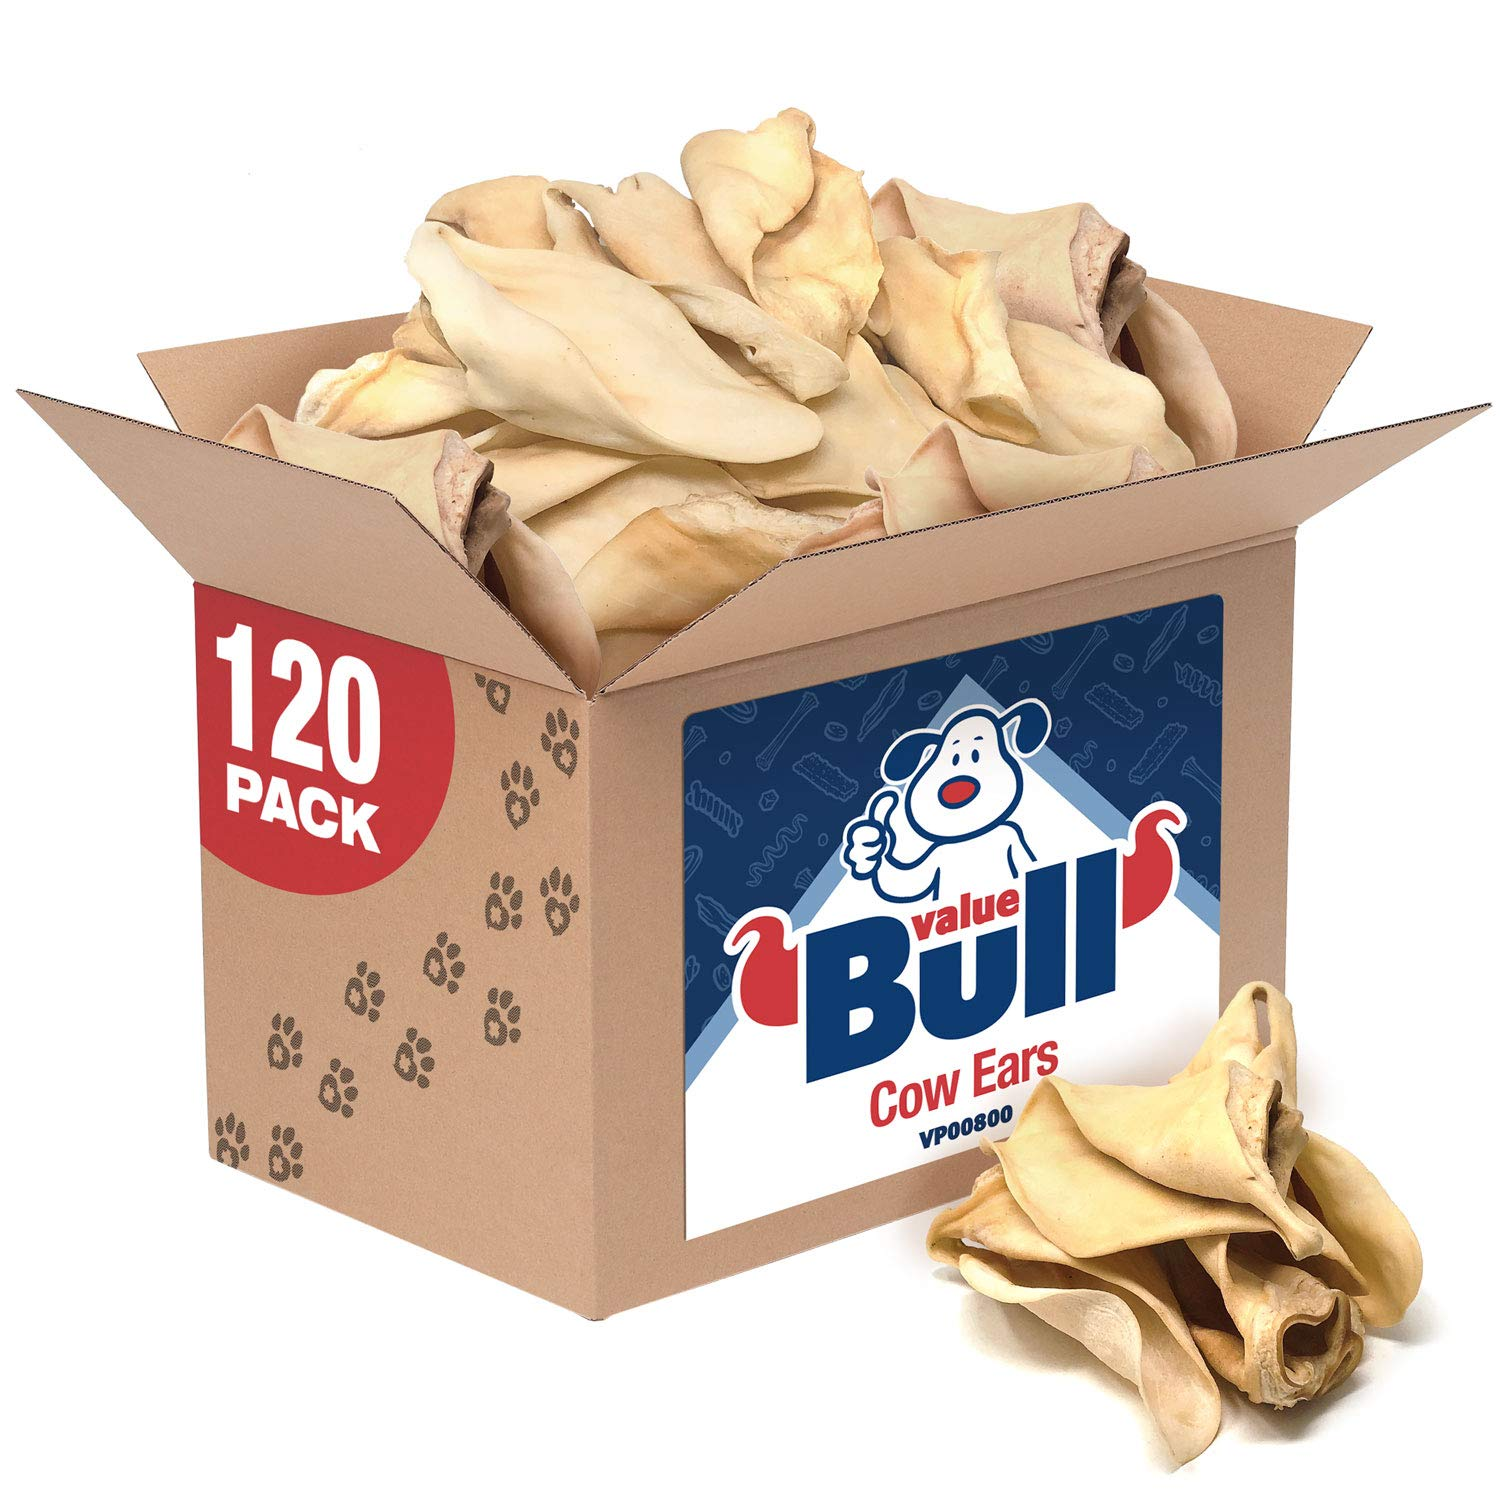 ValueBull Cow Ears, Jumbo Premium, 120 Count, Natural Dog Treats - Angus Beef, USDA/FDA-Approved by ValueBull